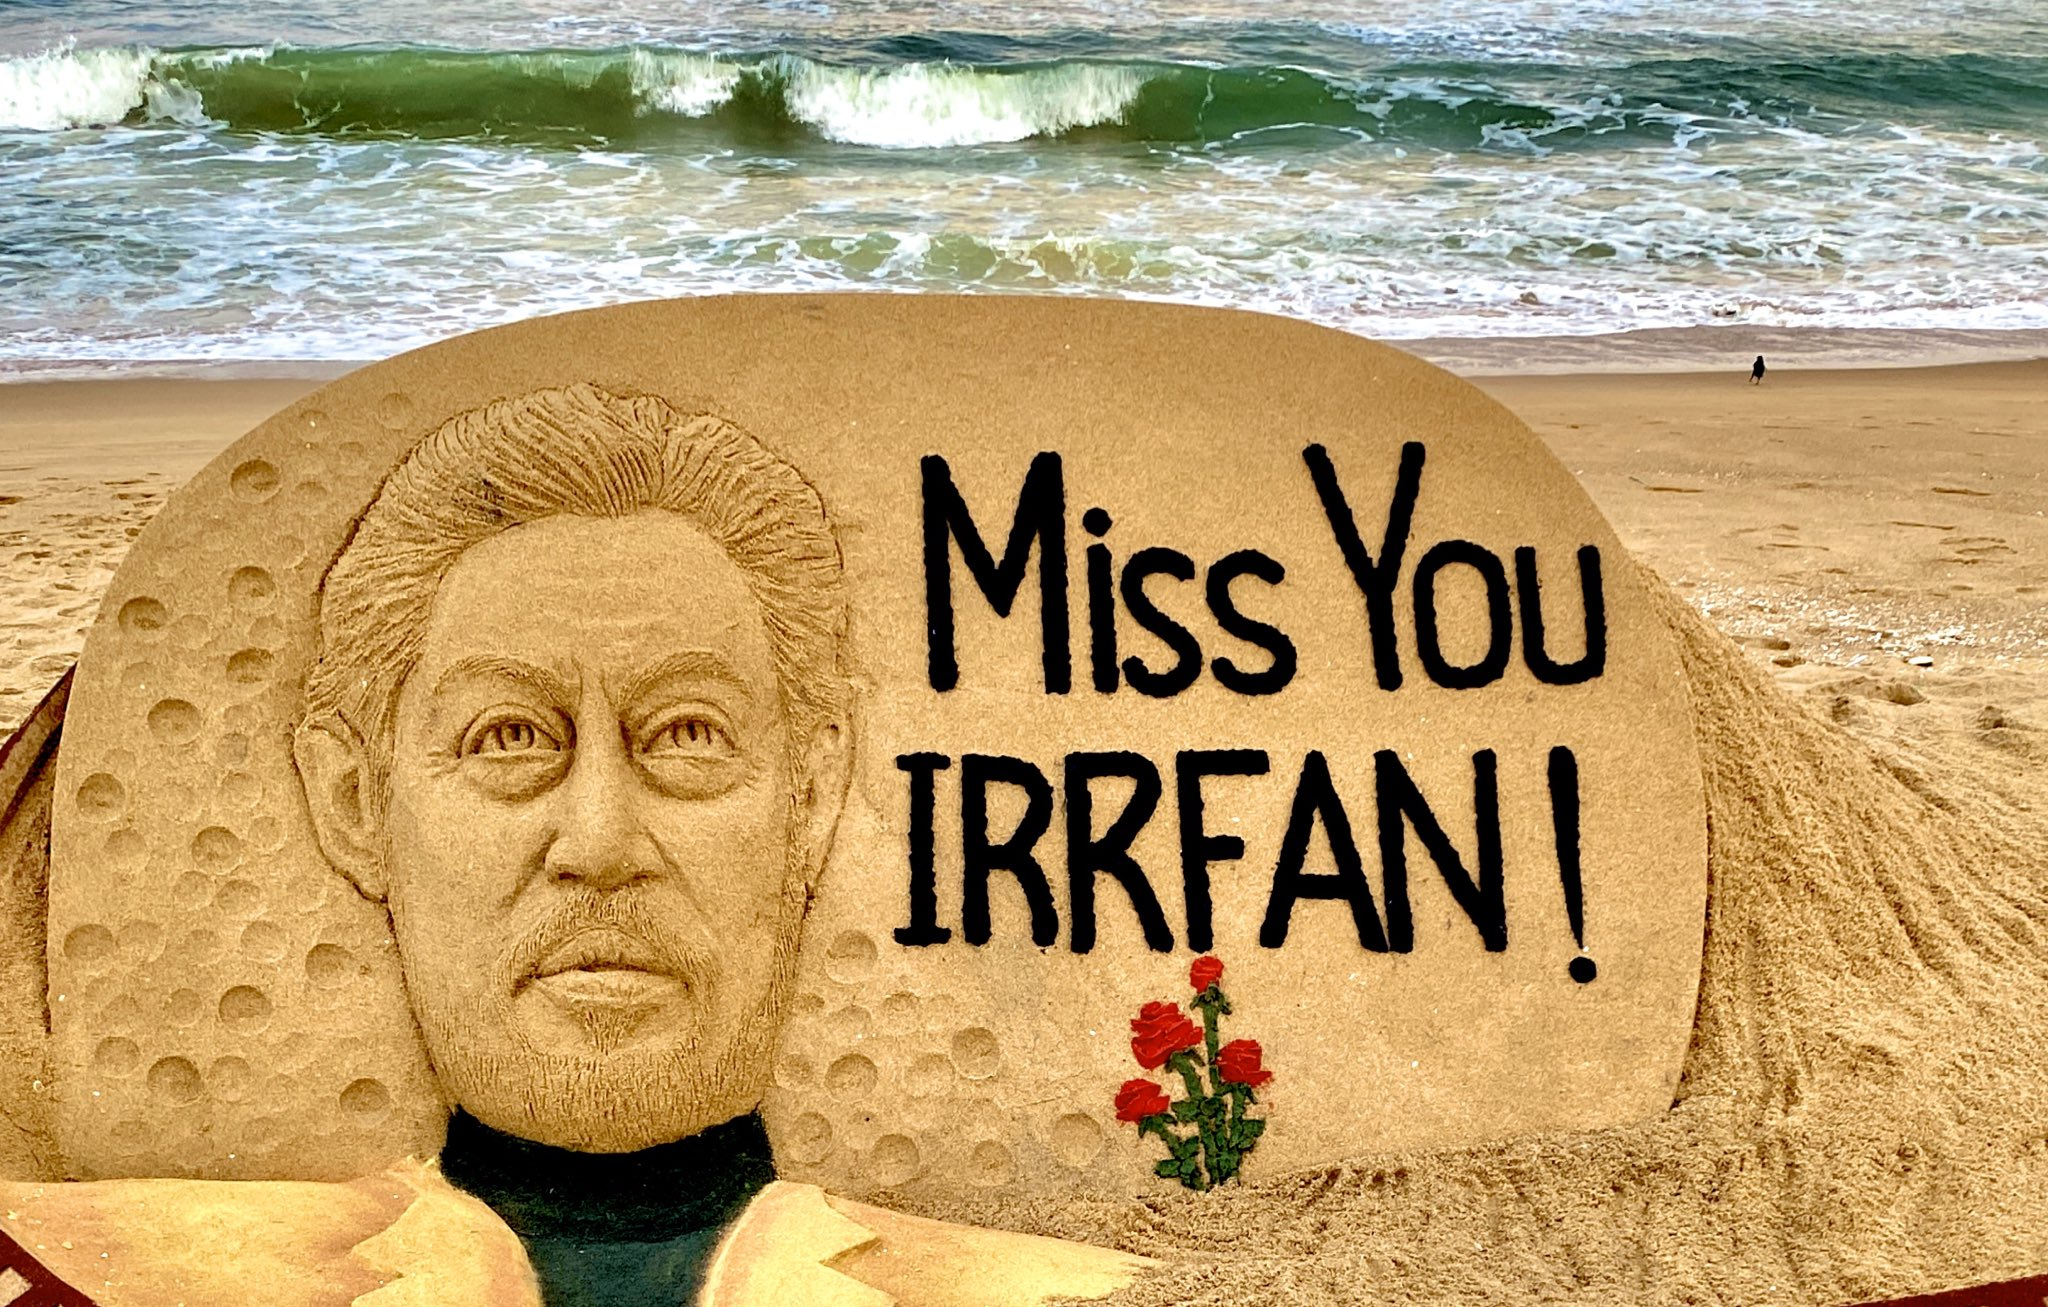 "Renowned sand artist Sudarsan Pattnaik on Wednesday gave a 'Sandy Tribute' to Actor Irrfan Khan through his sand art at Puri Beach in Odisha. Taking to Twitter, Pattnaik posted a picture of his sand art where he has drawn the actor's face on a sand tombstone and has written ""Miss You Irrfan!"" next to it."